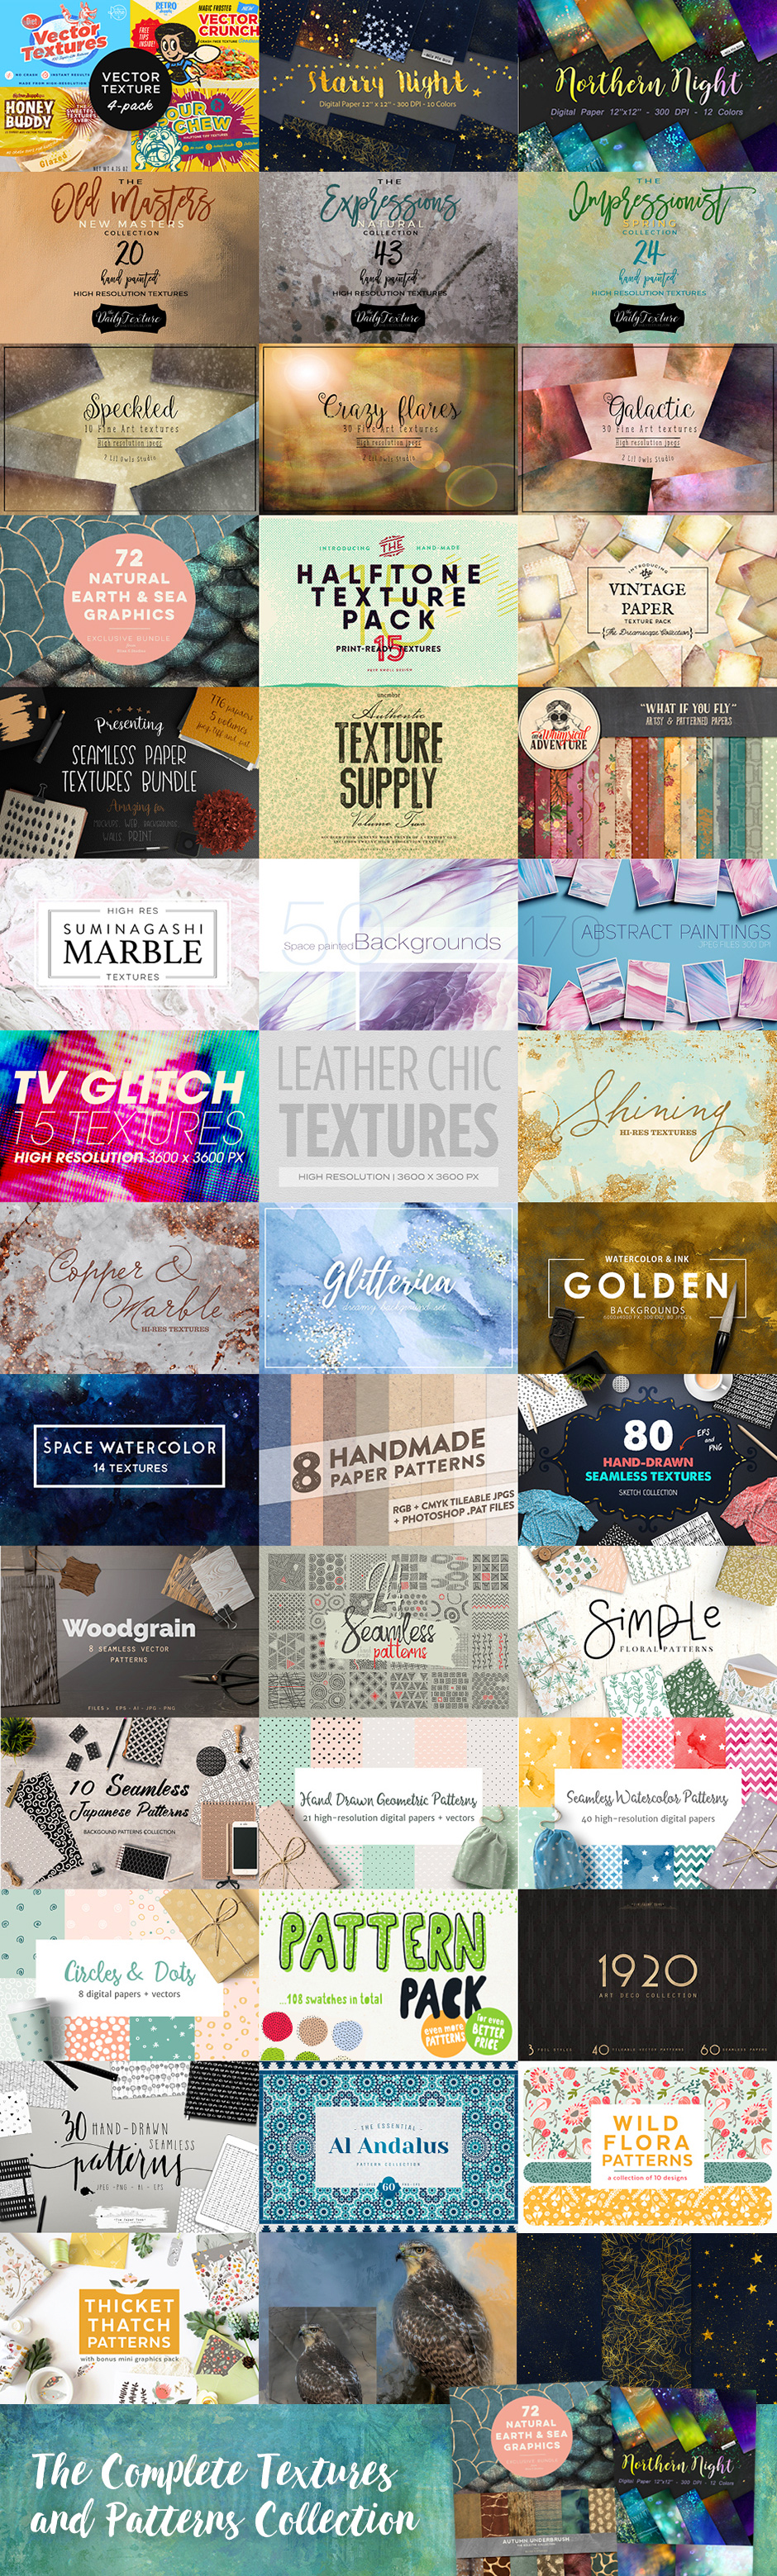 Giveaway: Win The Complete Textures and Patterns Collection! (graphic bundle) via surelysimple.com